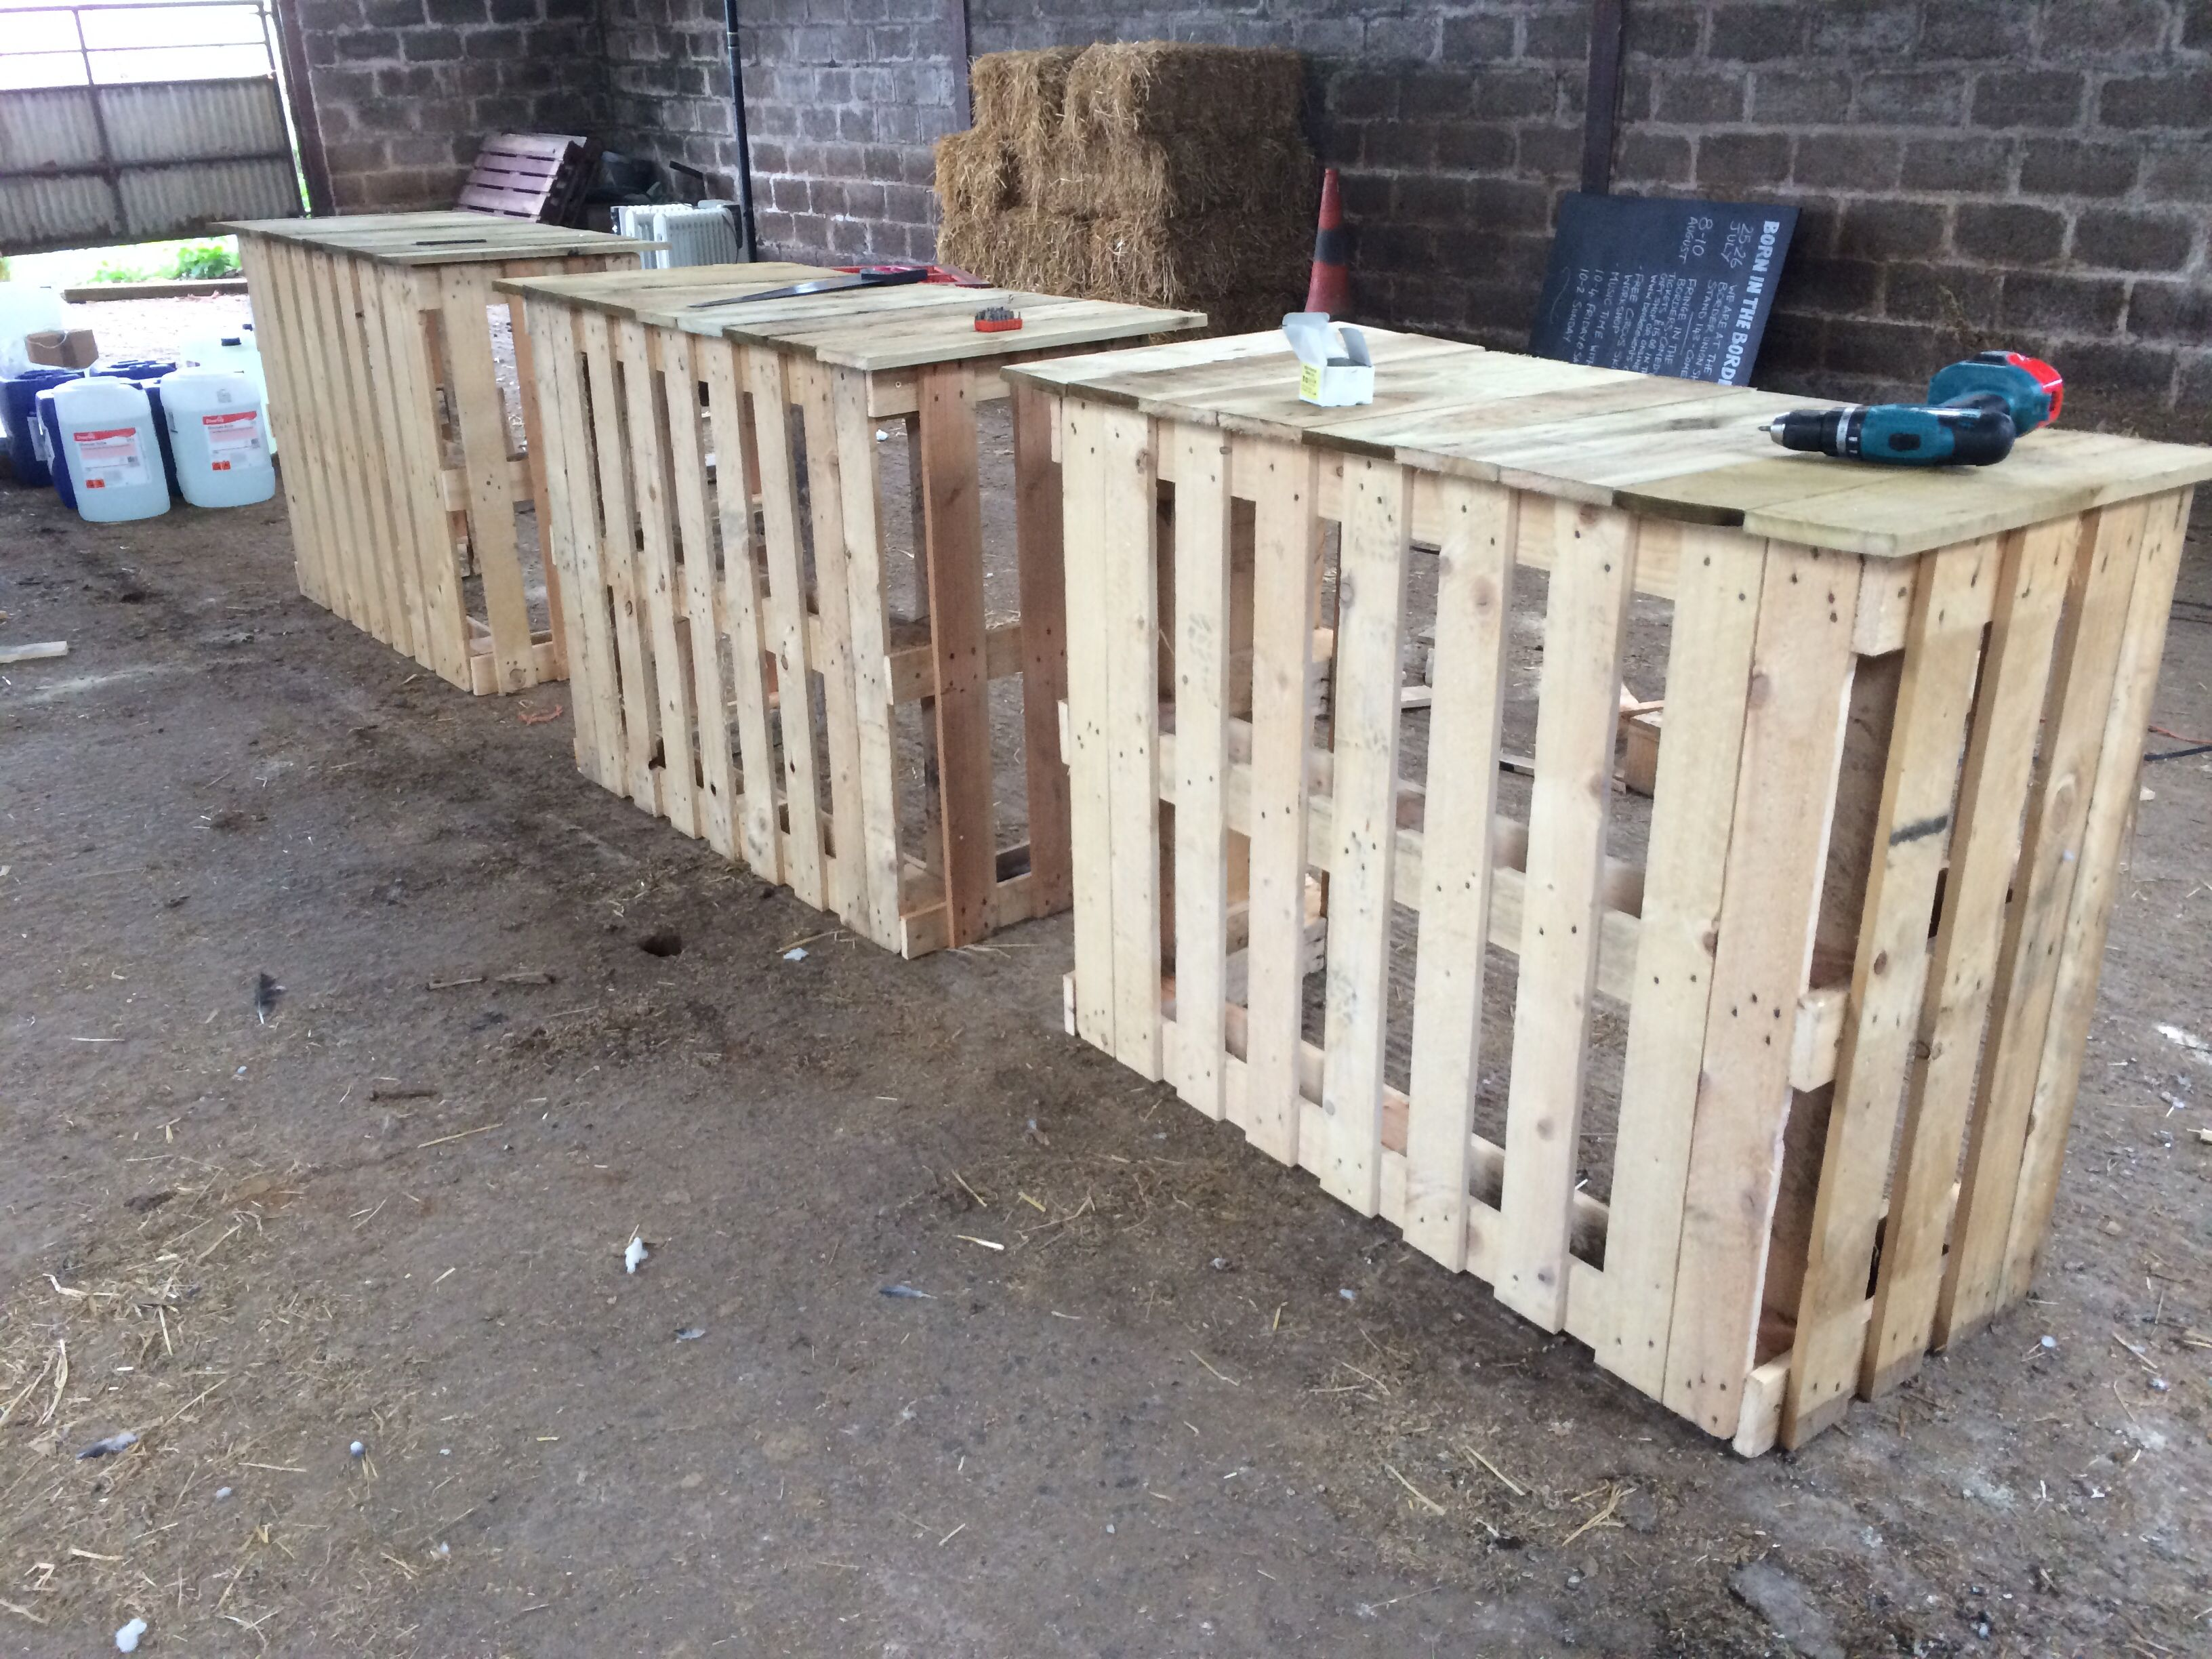 Bar Made Out Of Pallets Pallet Bars Made From Old Pallets And Off Cuts Bars From Pallets